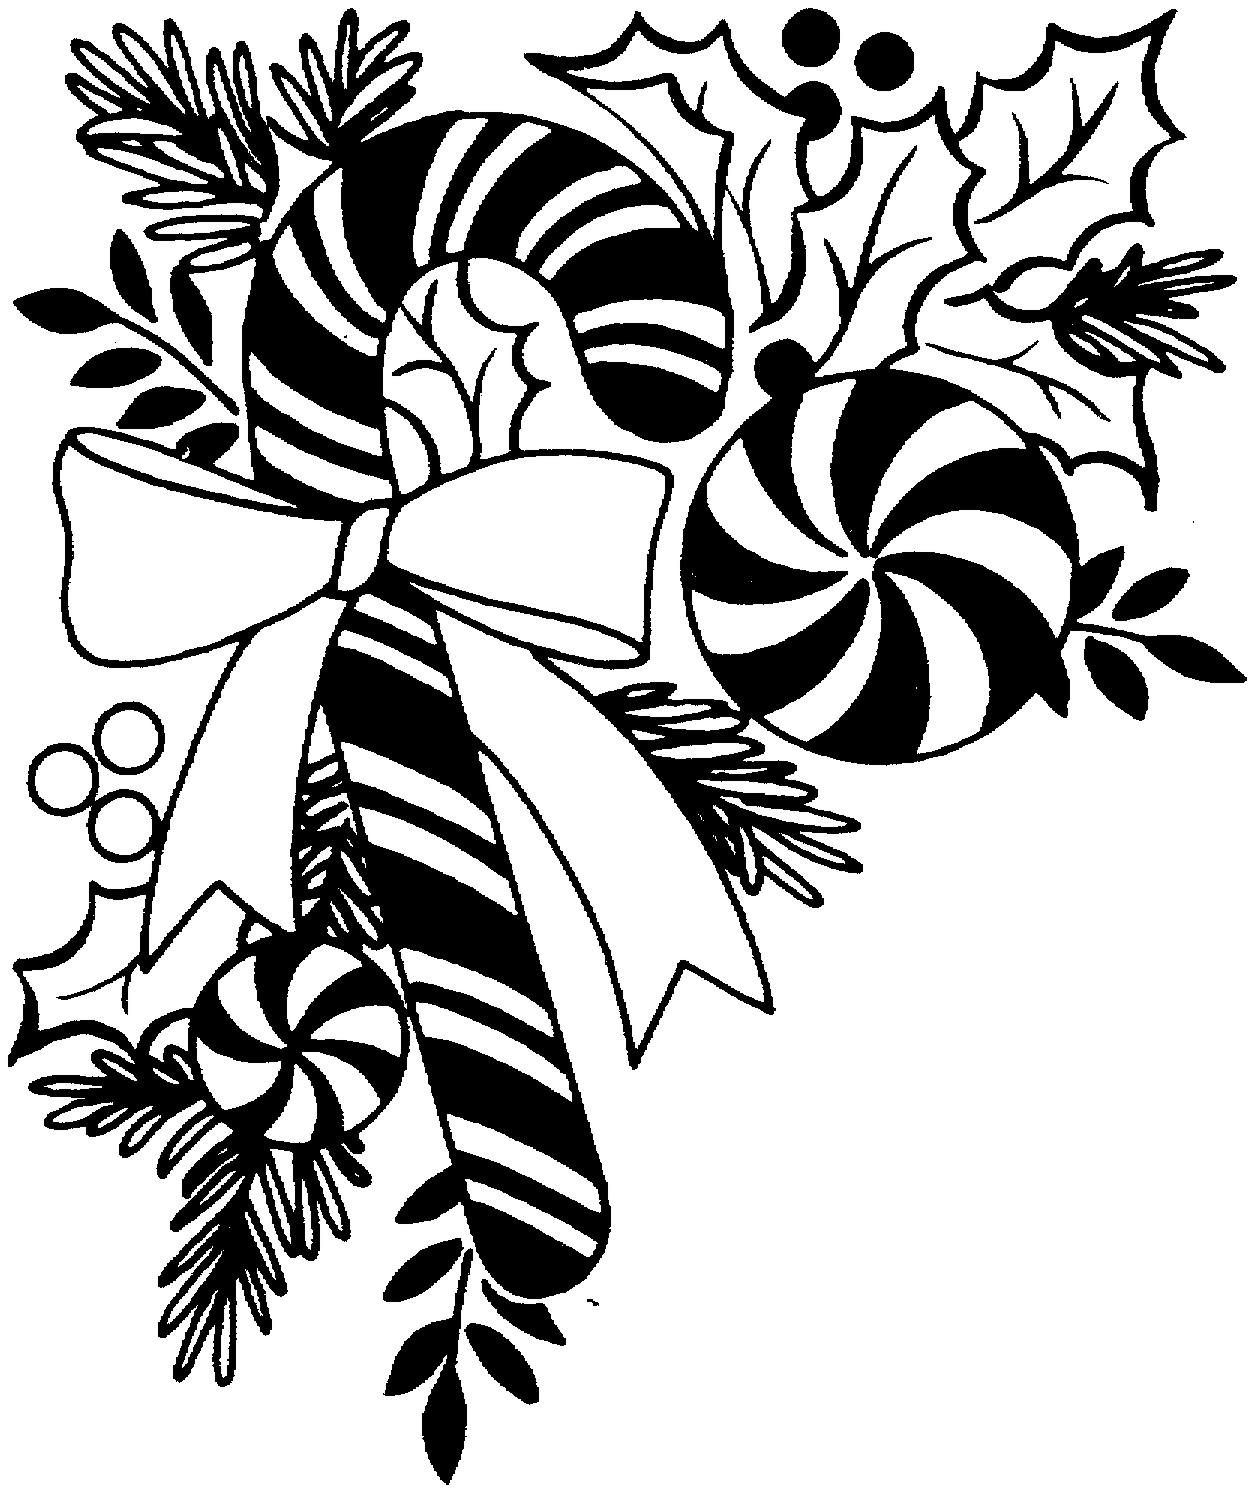 Black And White Christmas Clipart.Top Christmas Images Black And White Zachary Kristen